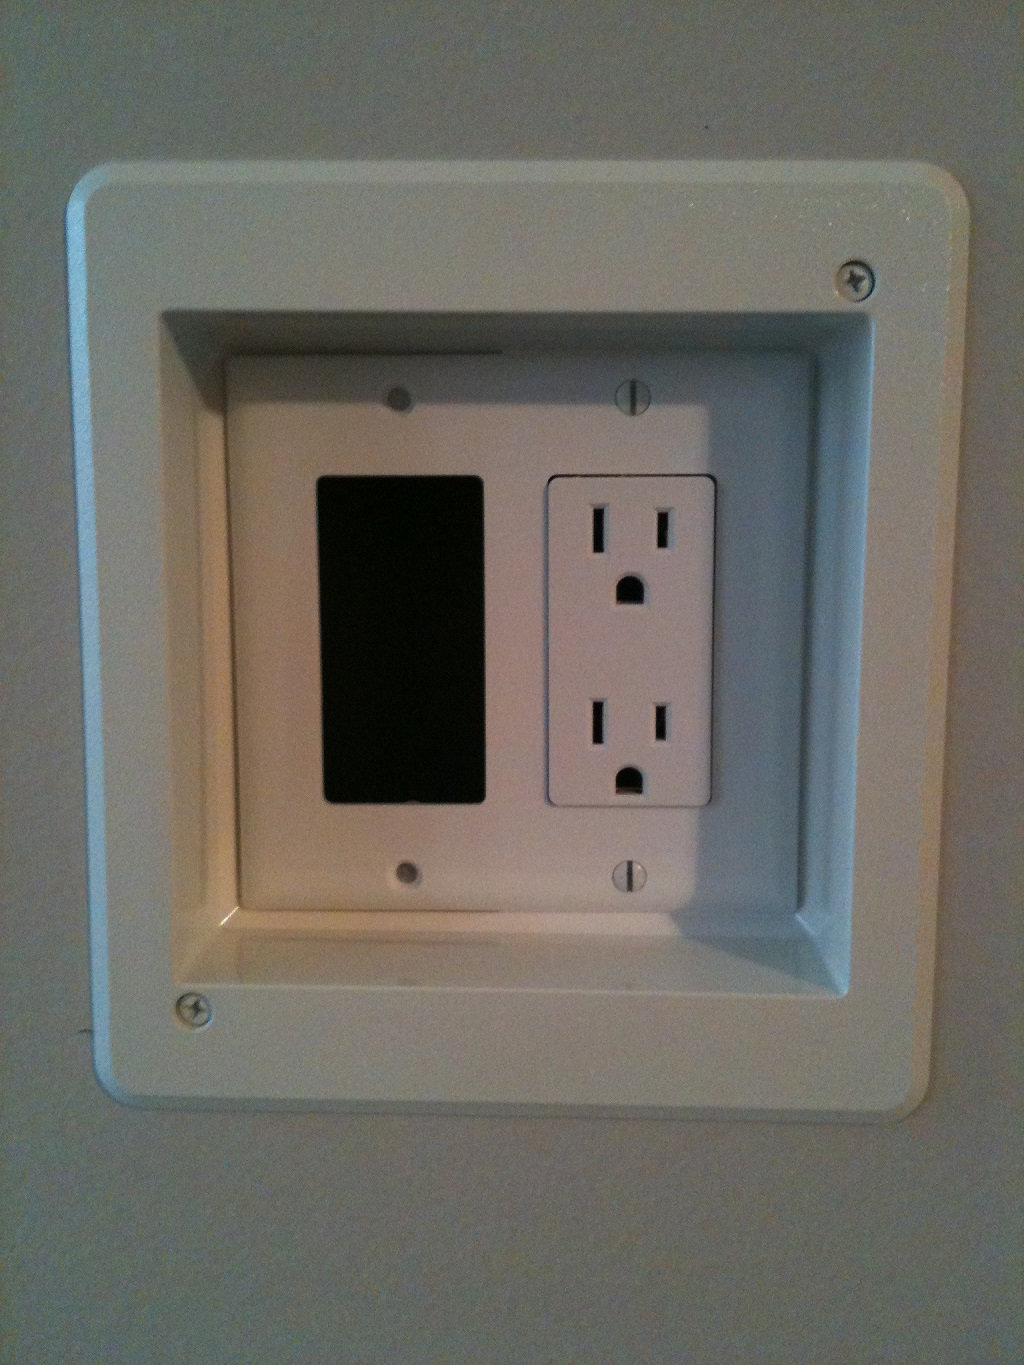 Tv Installations Central Nj Westfieldscotch Plains Wires When Installing Electrical Receptacles Wall Plug Outlets